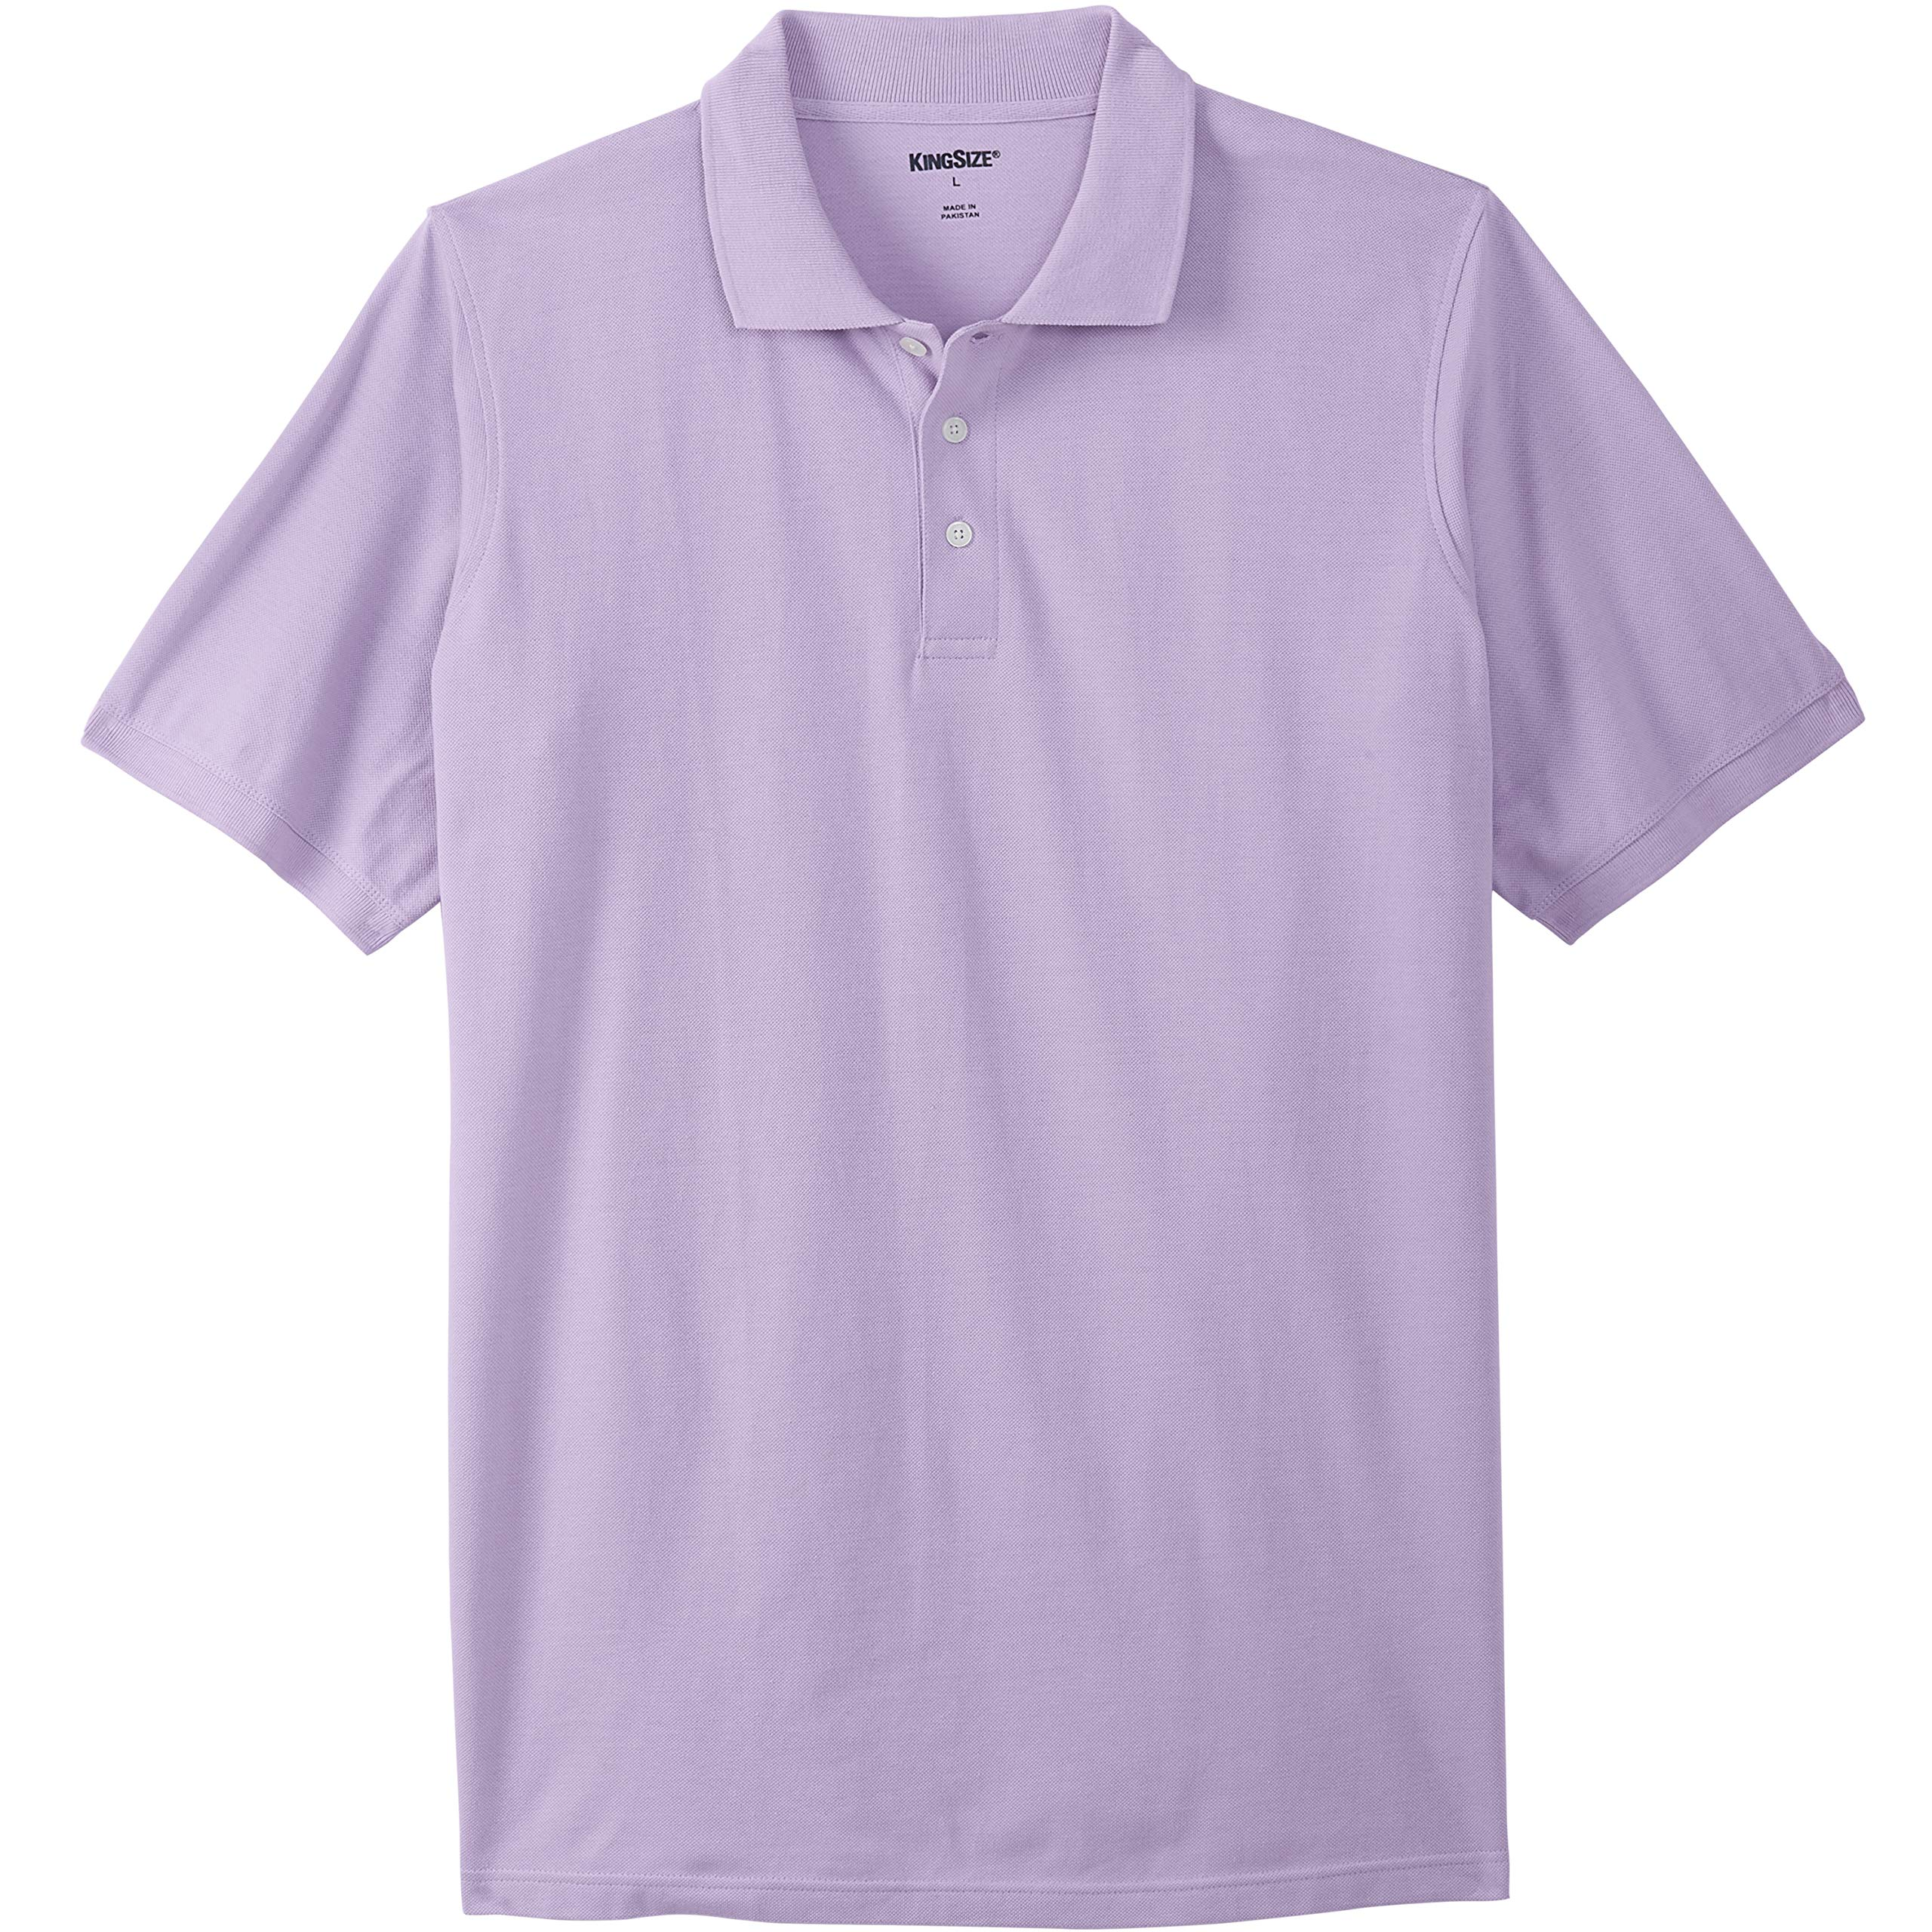 KingSize Men's Big & Tall Longer-Length Pique Polo Shirt, Soft Purple Big-2XL